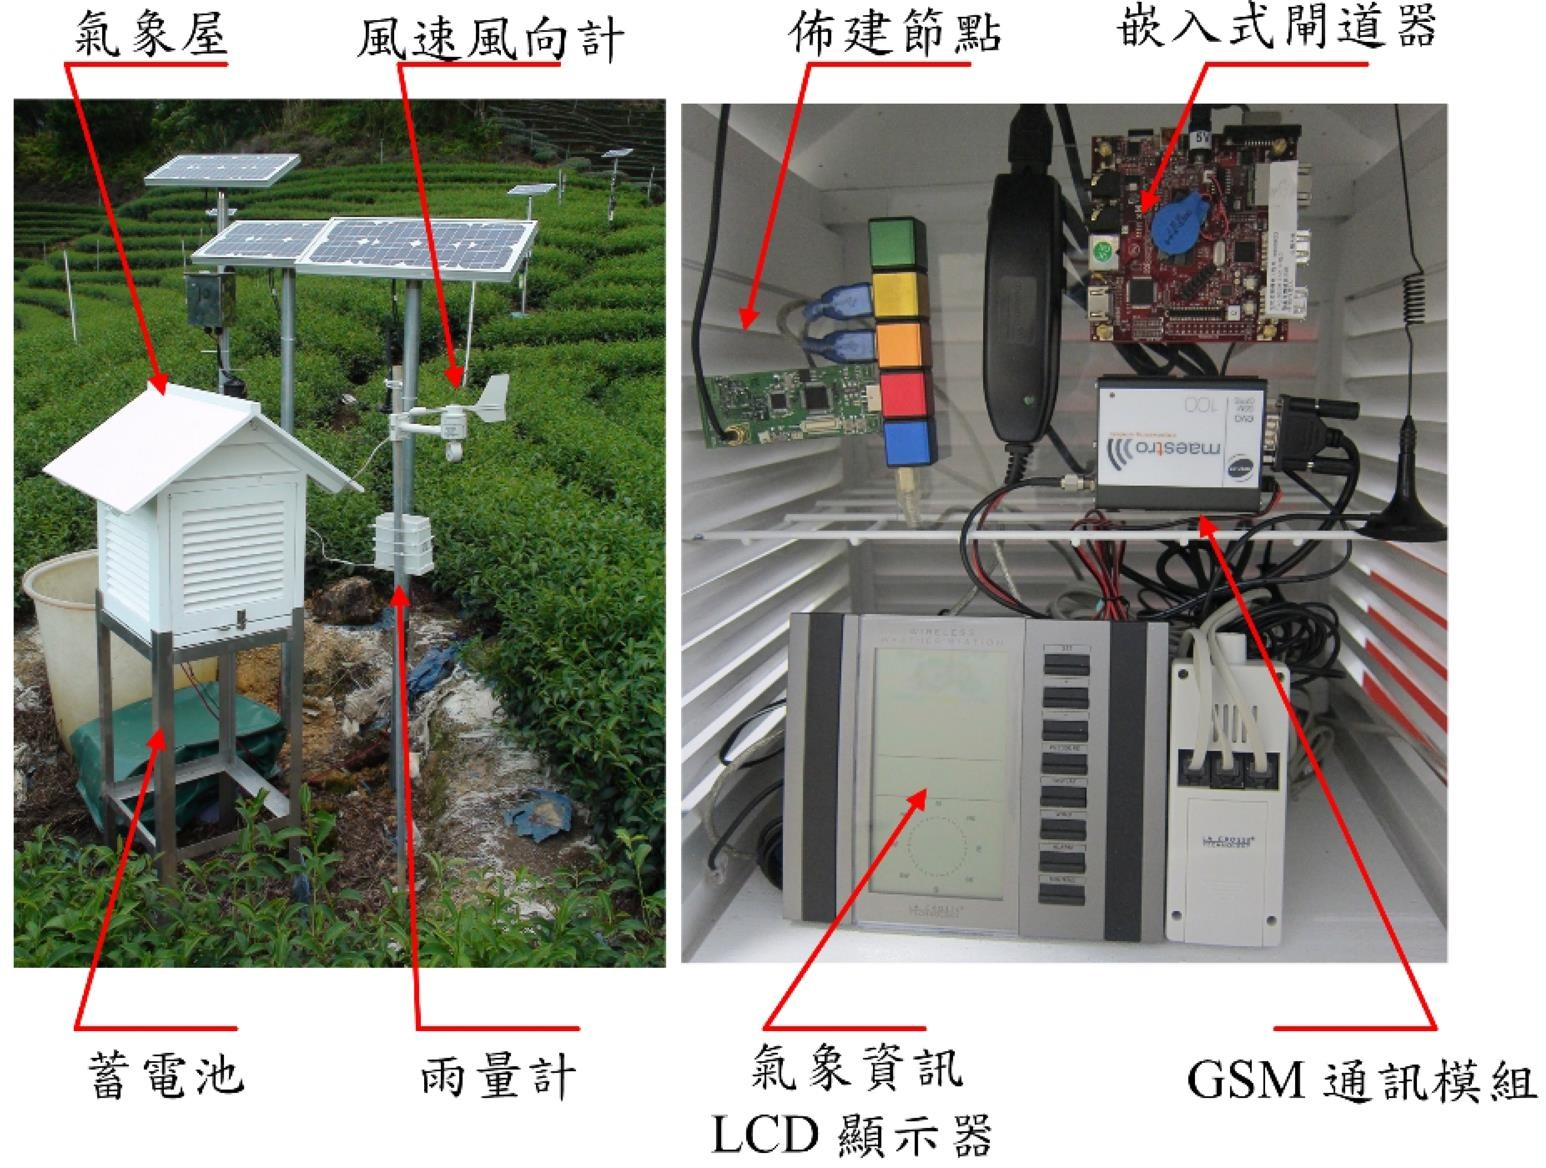 Pest monitoring system